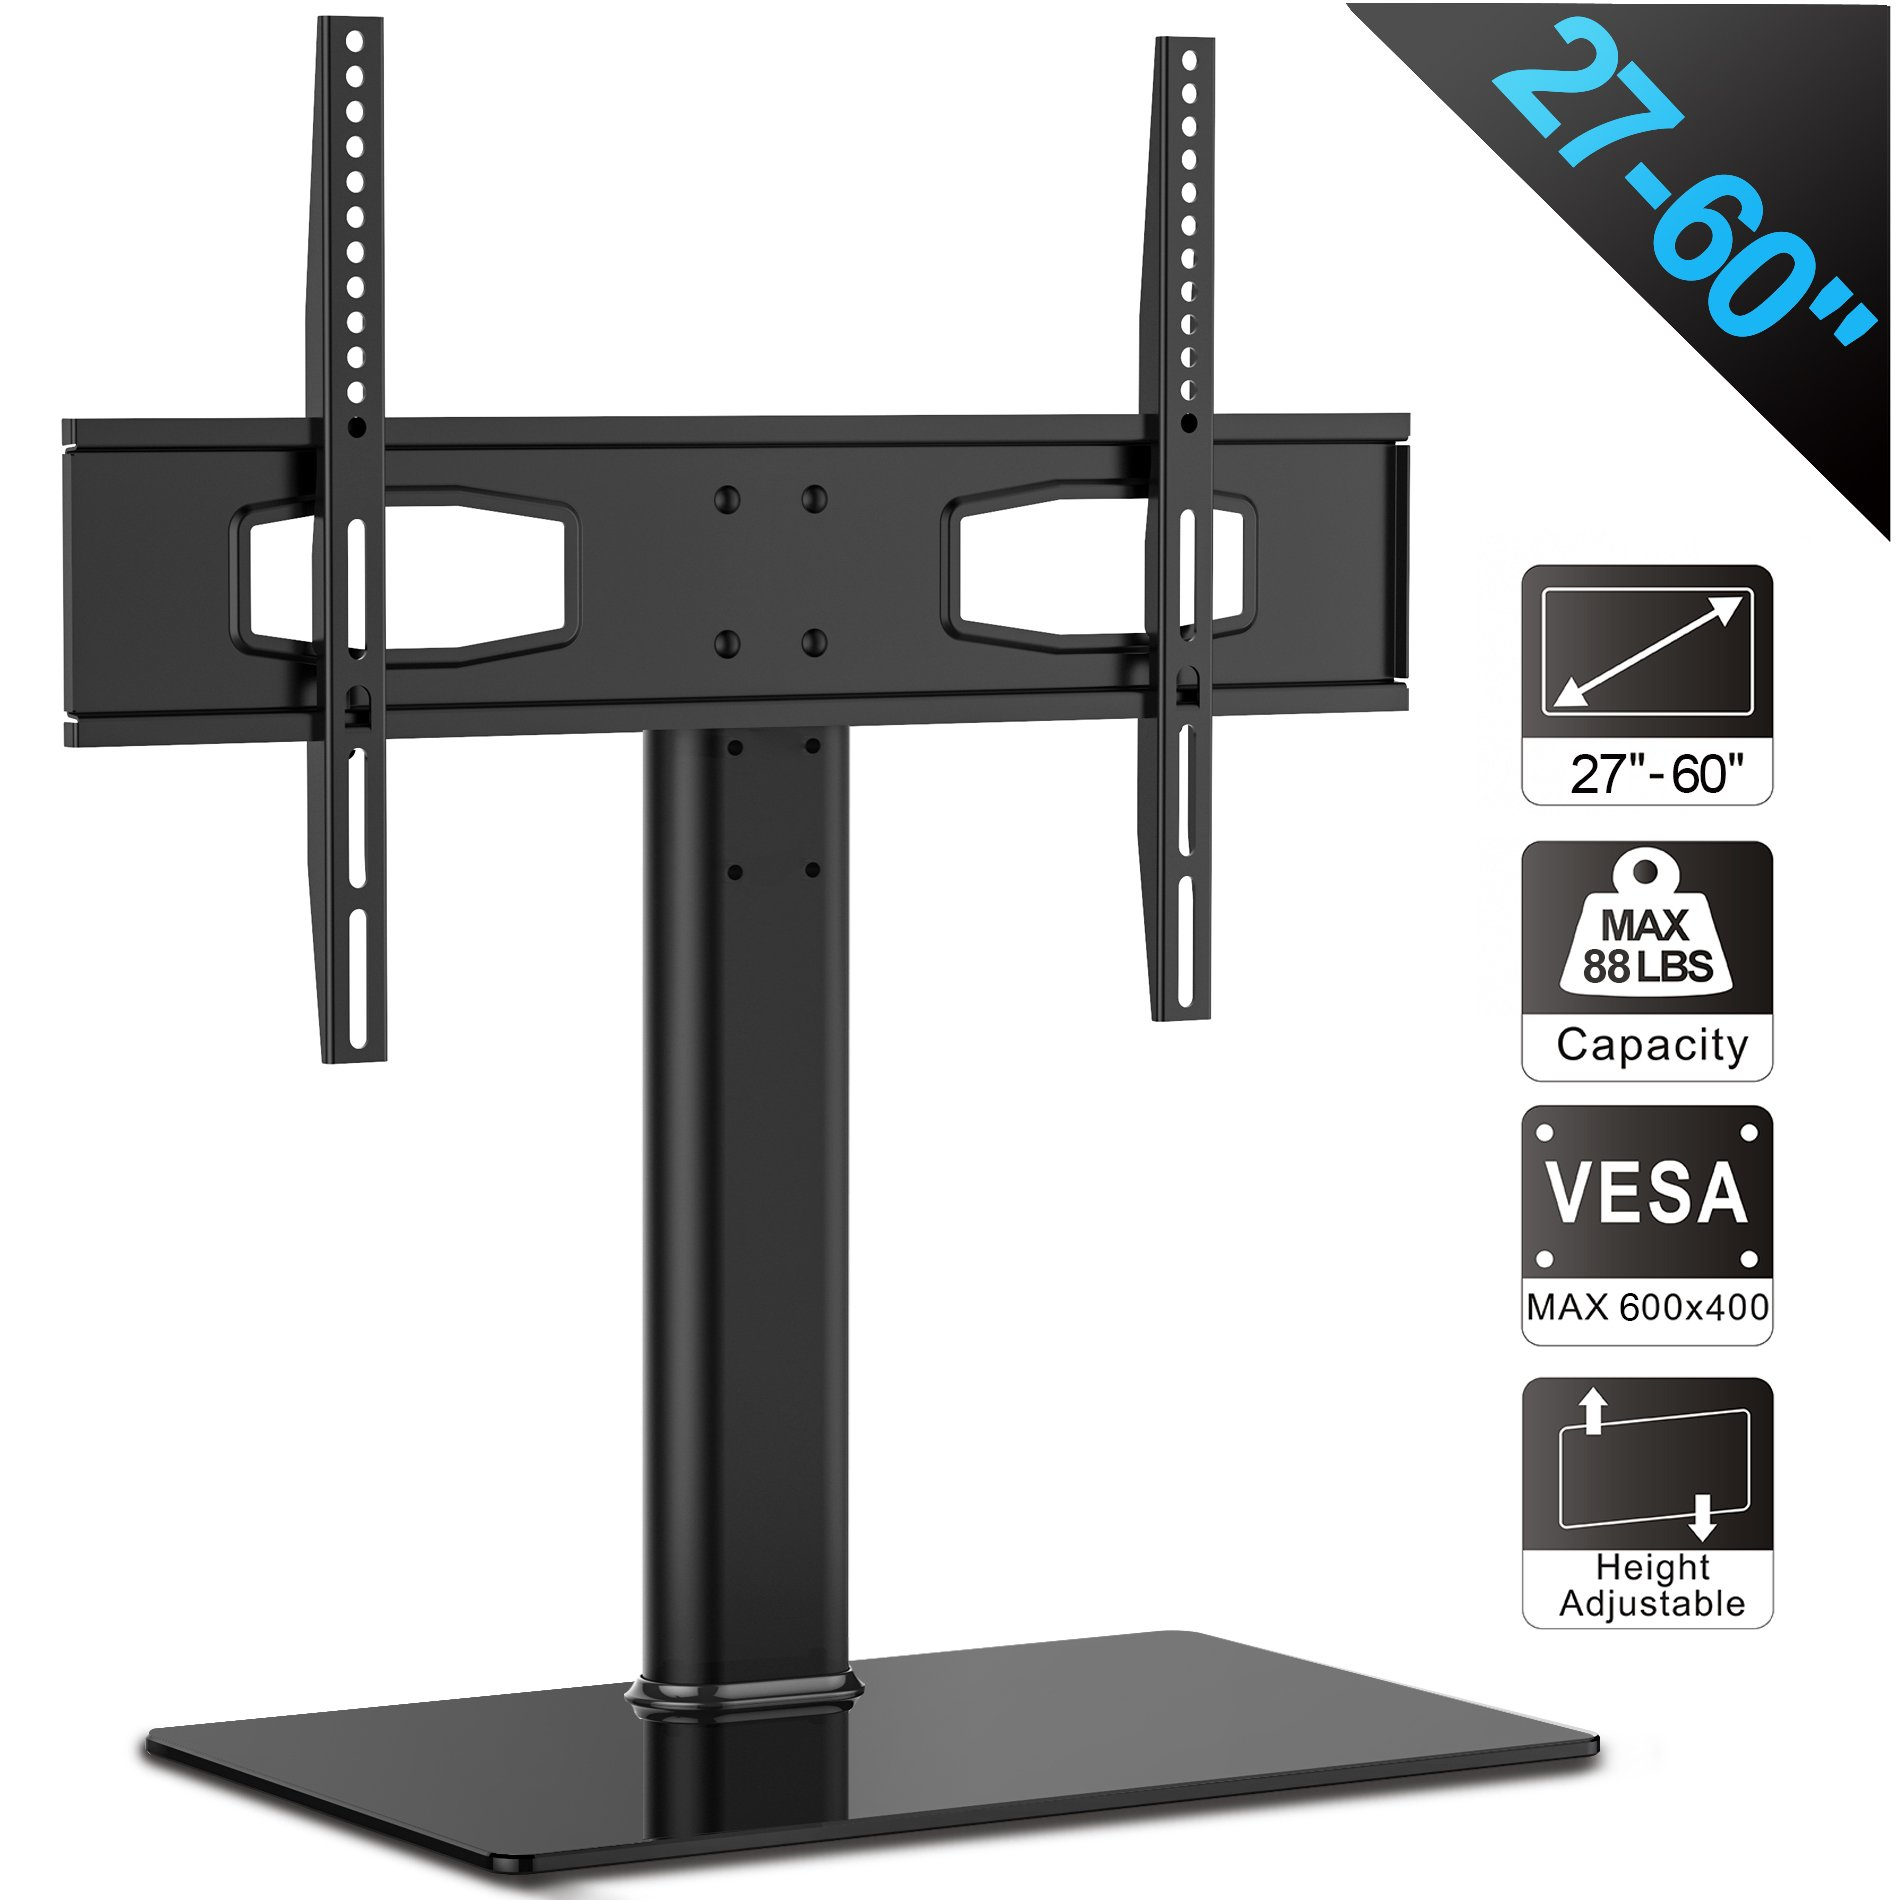 Fitueyes Universal TV Stand/Base Tabletop TV Stand with Mount for up to 60 inch Flat Screen Tvs Vizio/Sumsung/Sony Tvs/Xbox One/tv Components Max VESA 400x600 TT105201GB